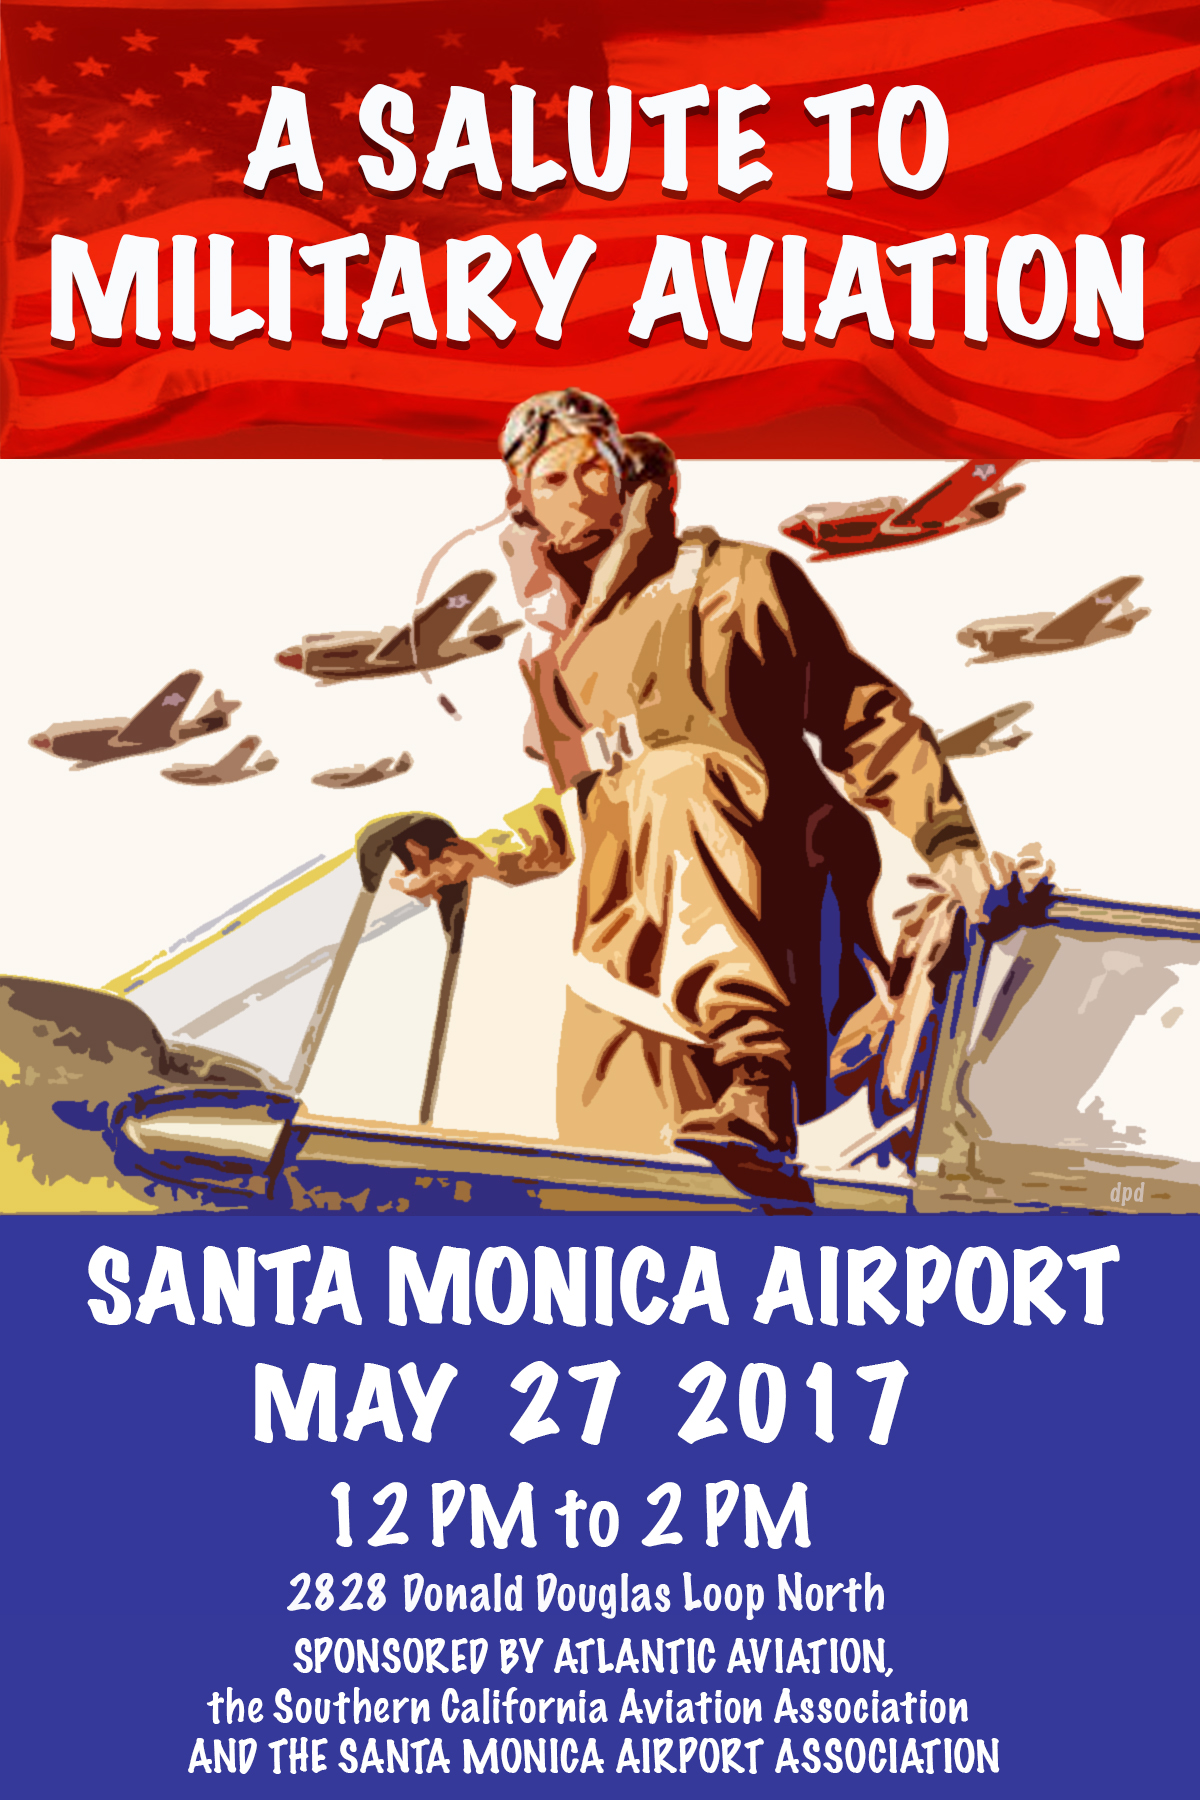 salute_to_mil_aviation_announcement_card.jpg